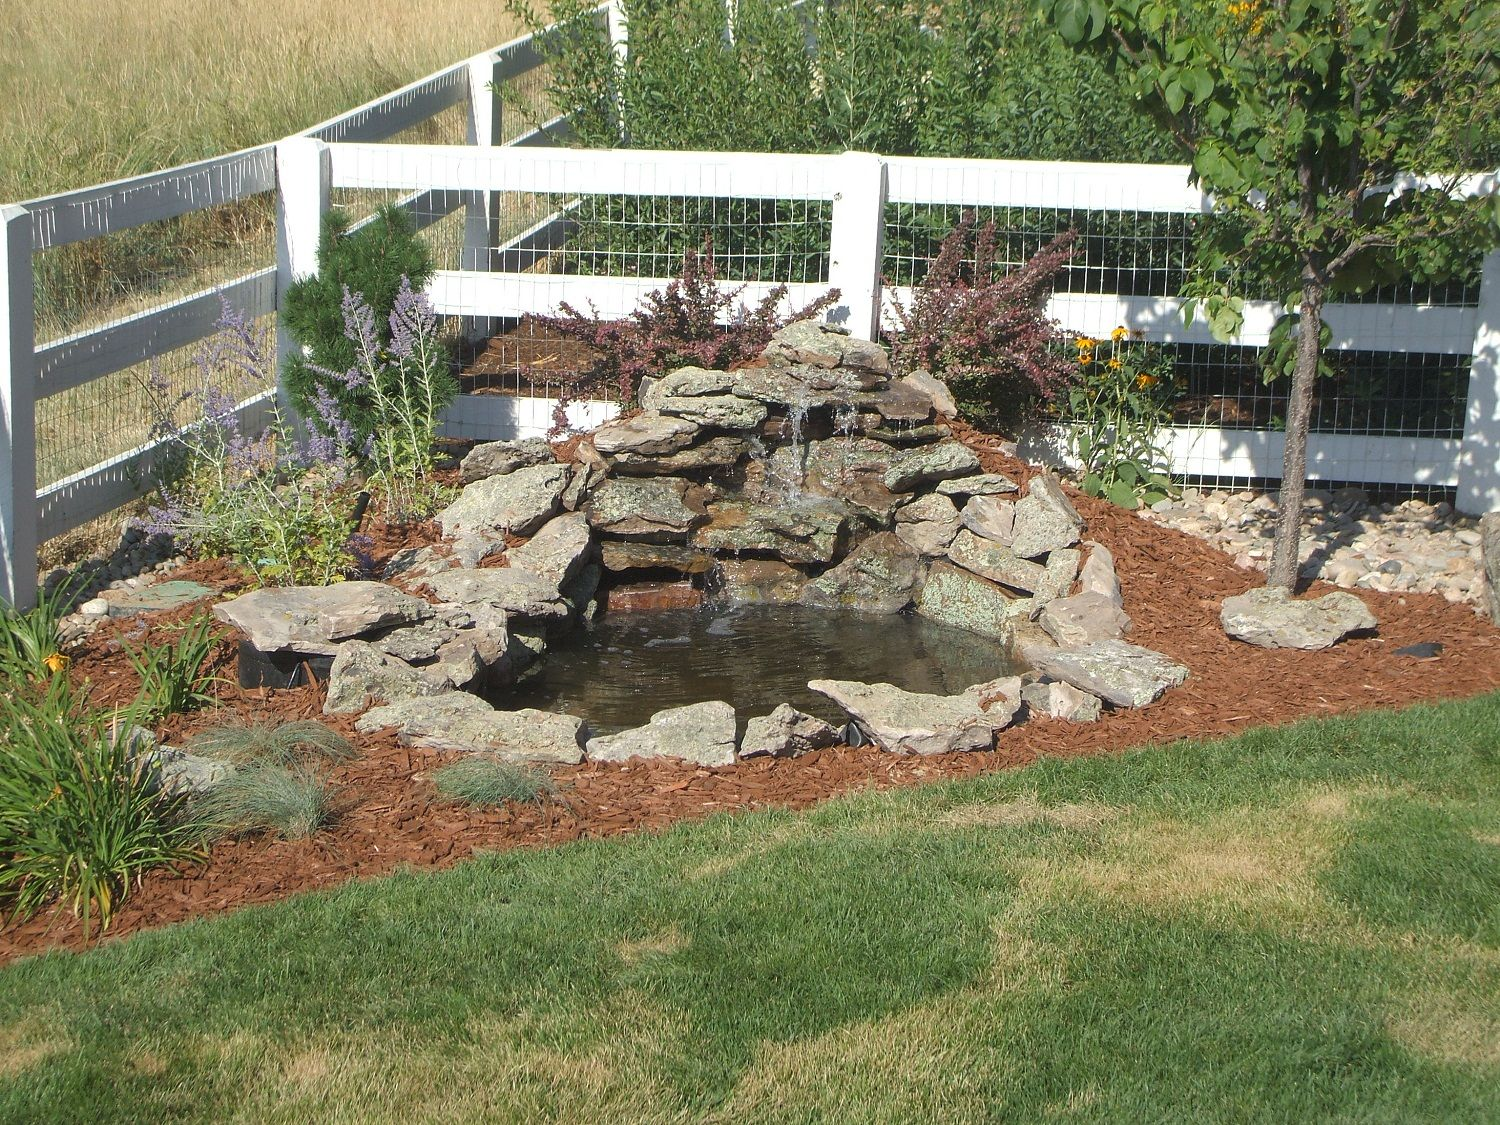 Garden and patio small diy ponds with waterfall and stone for Small pond design ideas